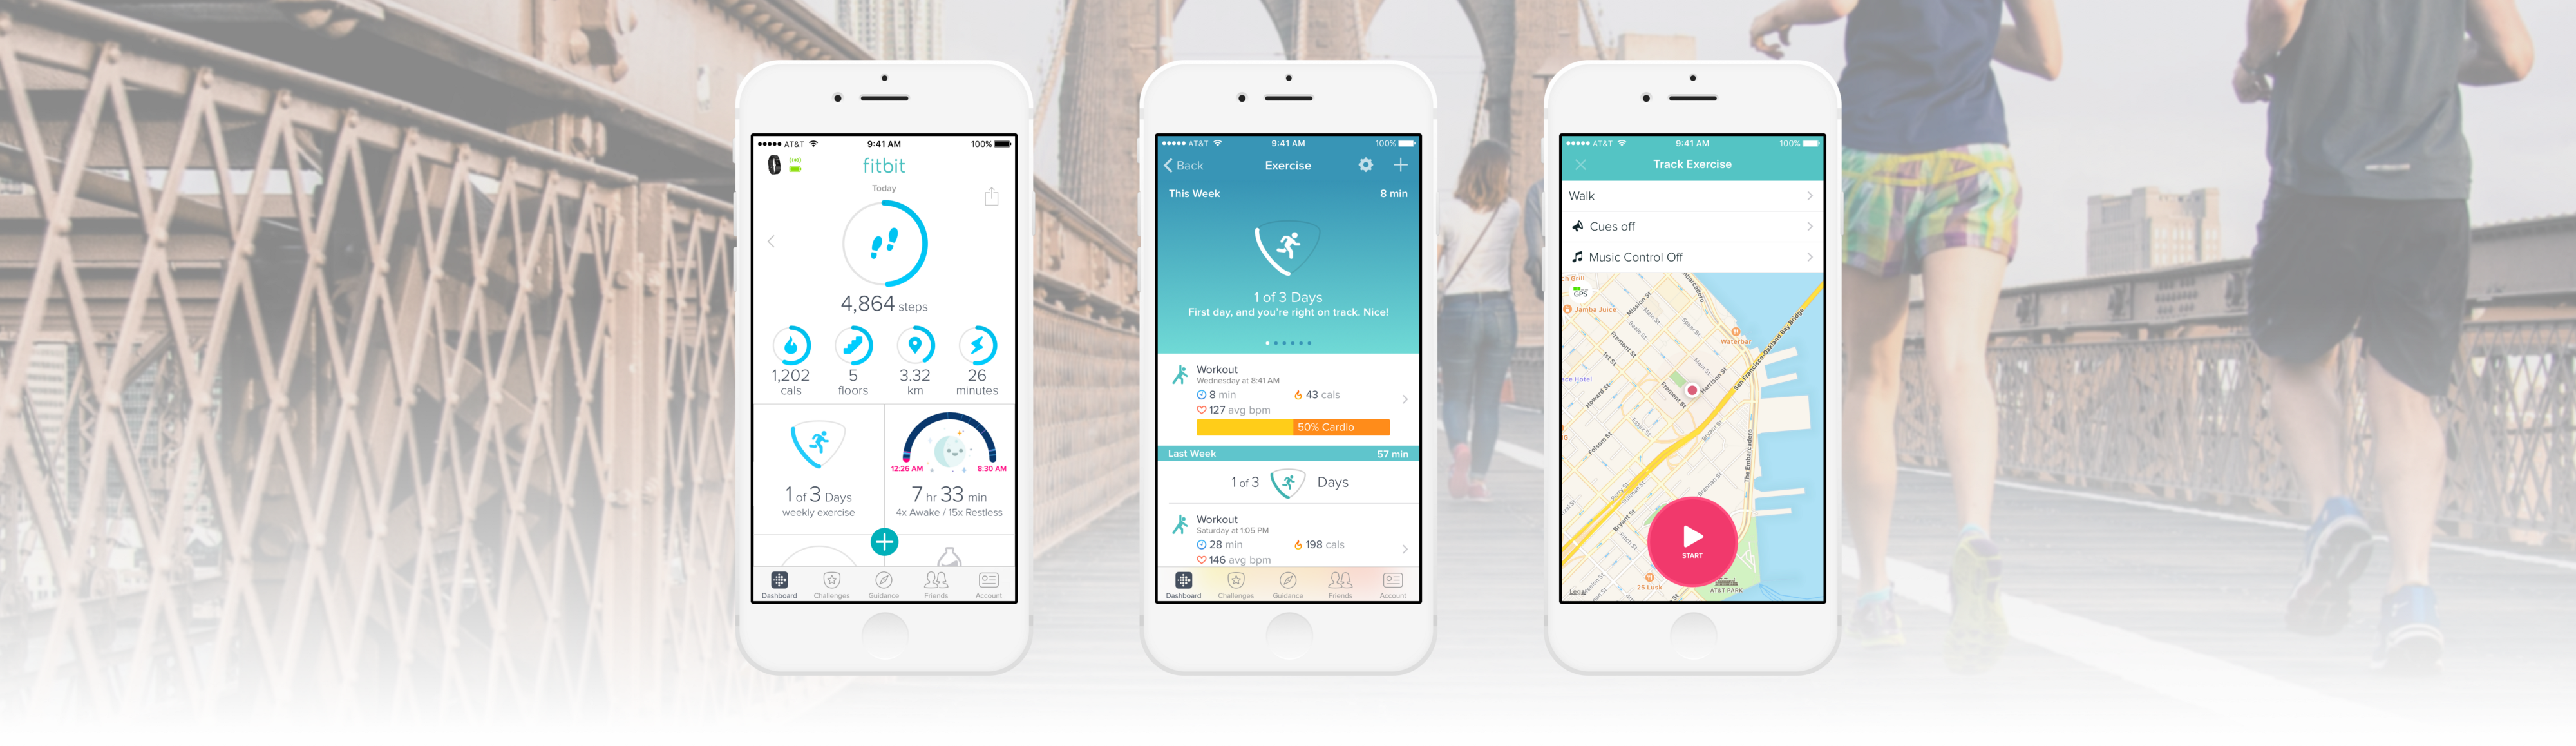 Fitbit: the UX behind the habit of exercise — a UX case study